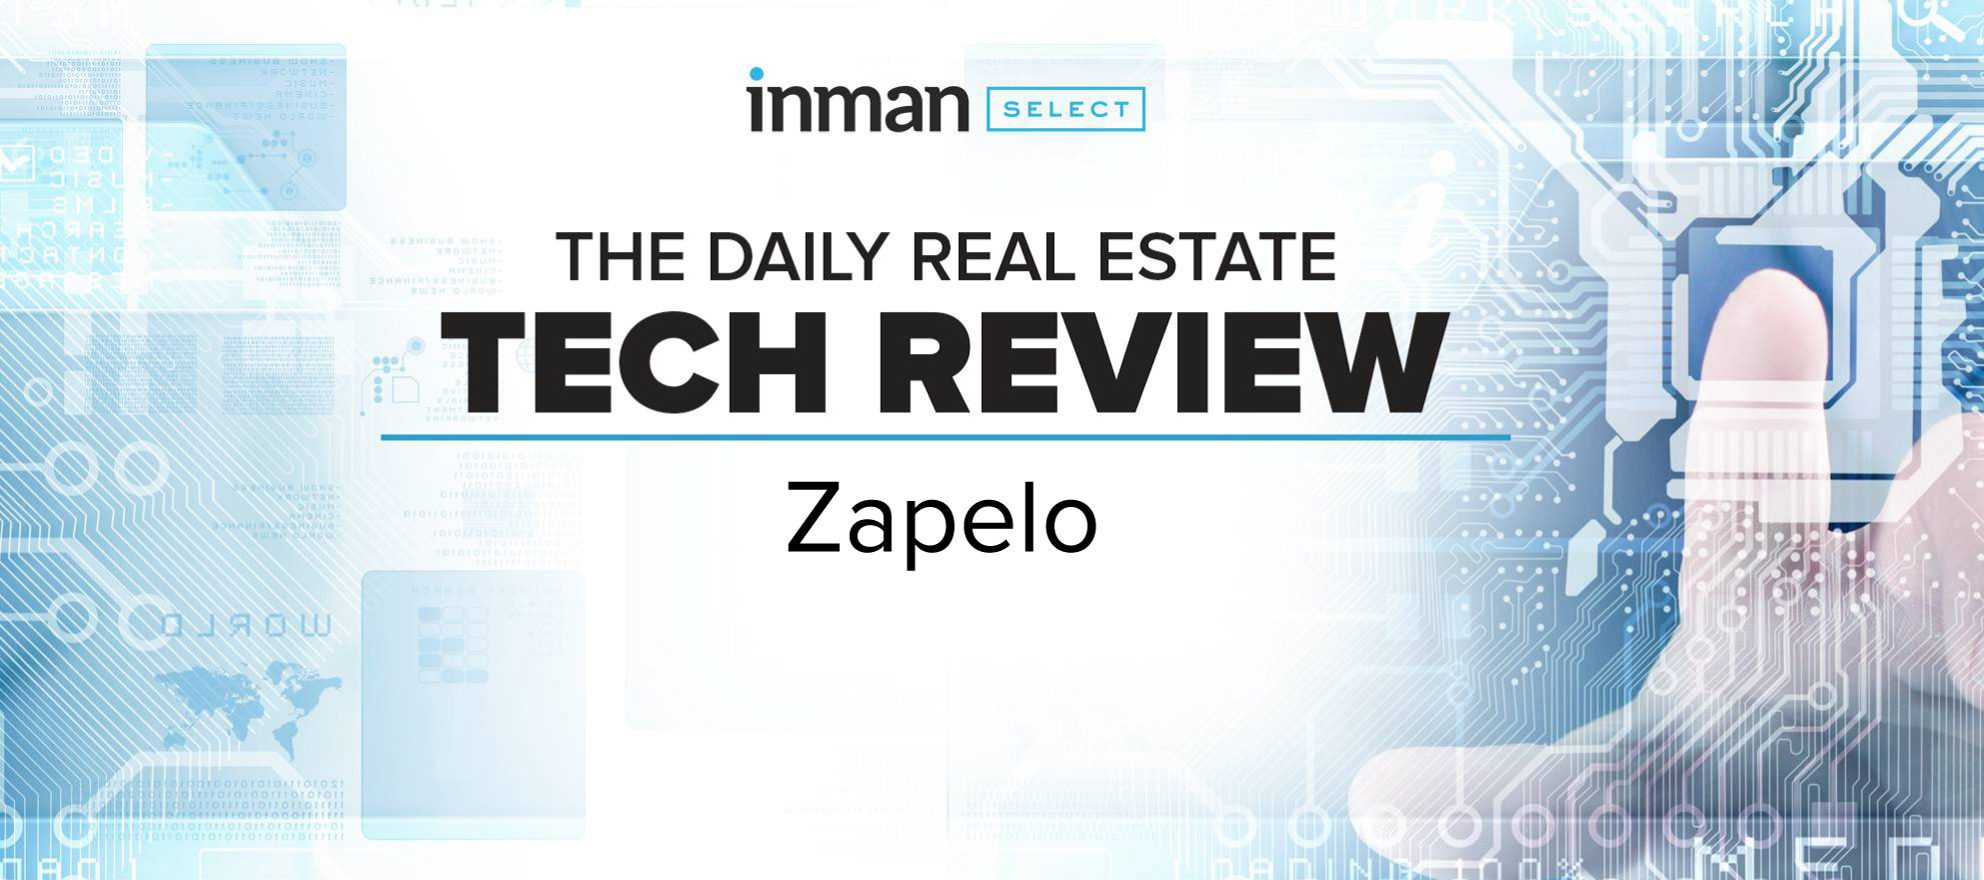 Despite small flaws, Zapelo is smart real estate workflow software